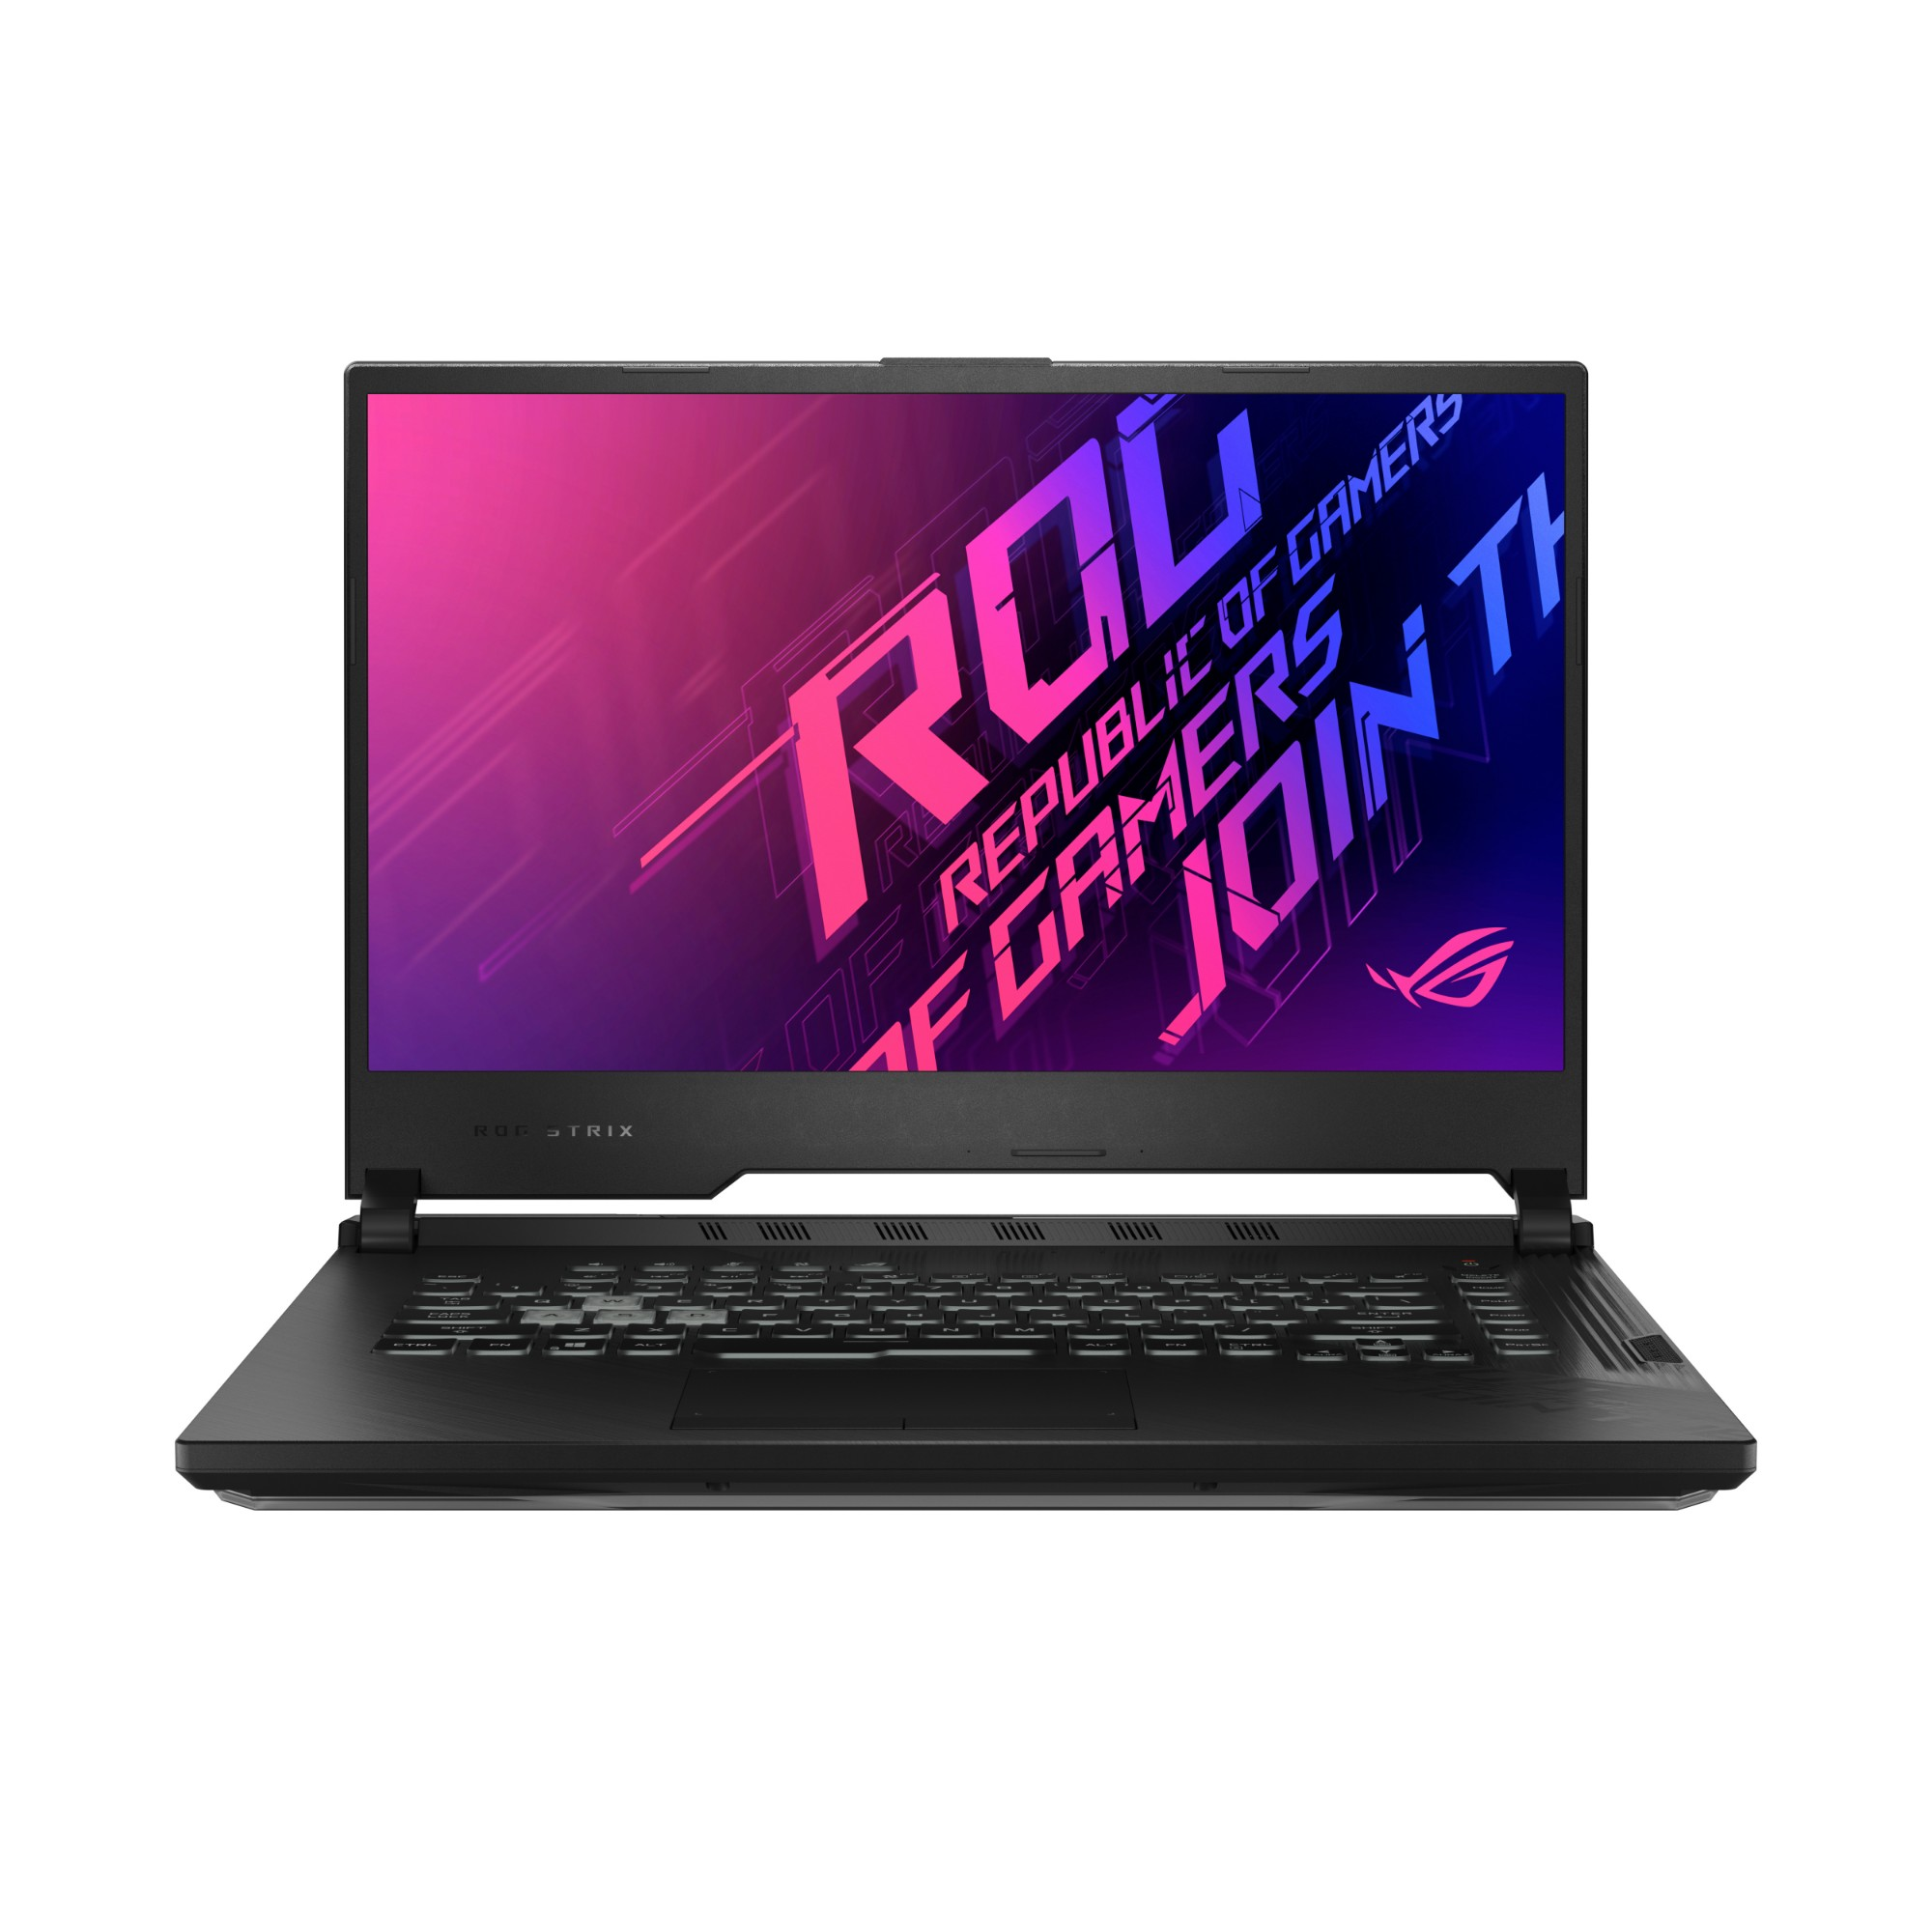 "ASUS ROG Strix G512LW-HN037T Notebook Black 39.6 cm (15.6"") 1920 x 1080 pixels 10th gen Intel® Core™ i7 16 GB DDR4-SDRAM 512 GB SSD NVIDIA® GeForce RTX™ 2070 Wi-Fi 6 (802.11ax) Windows 10 Home"